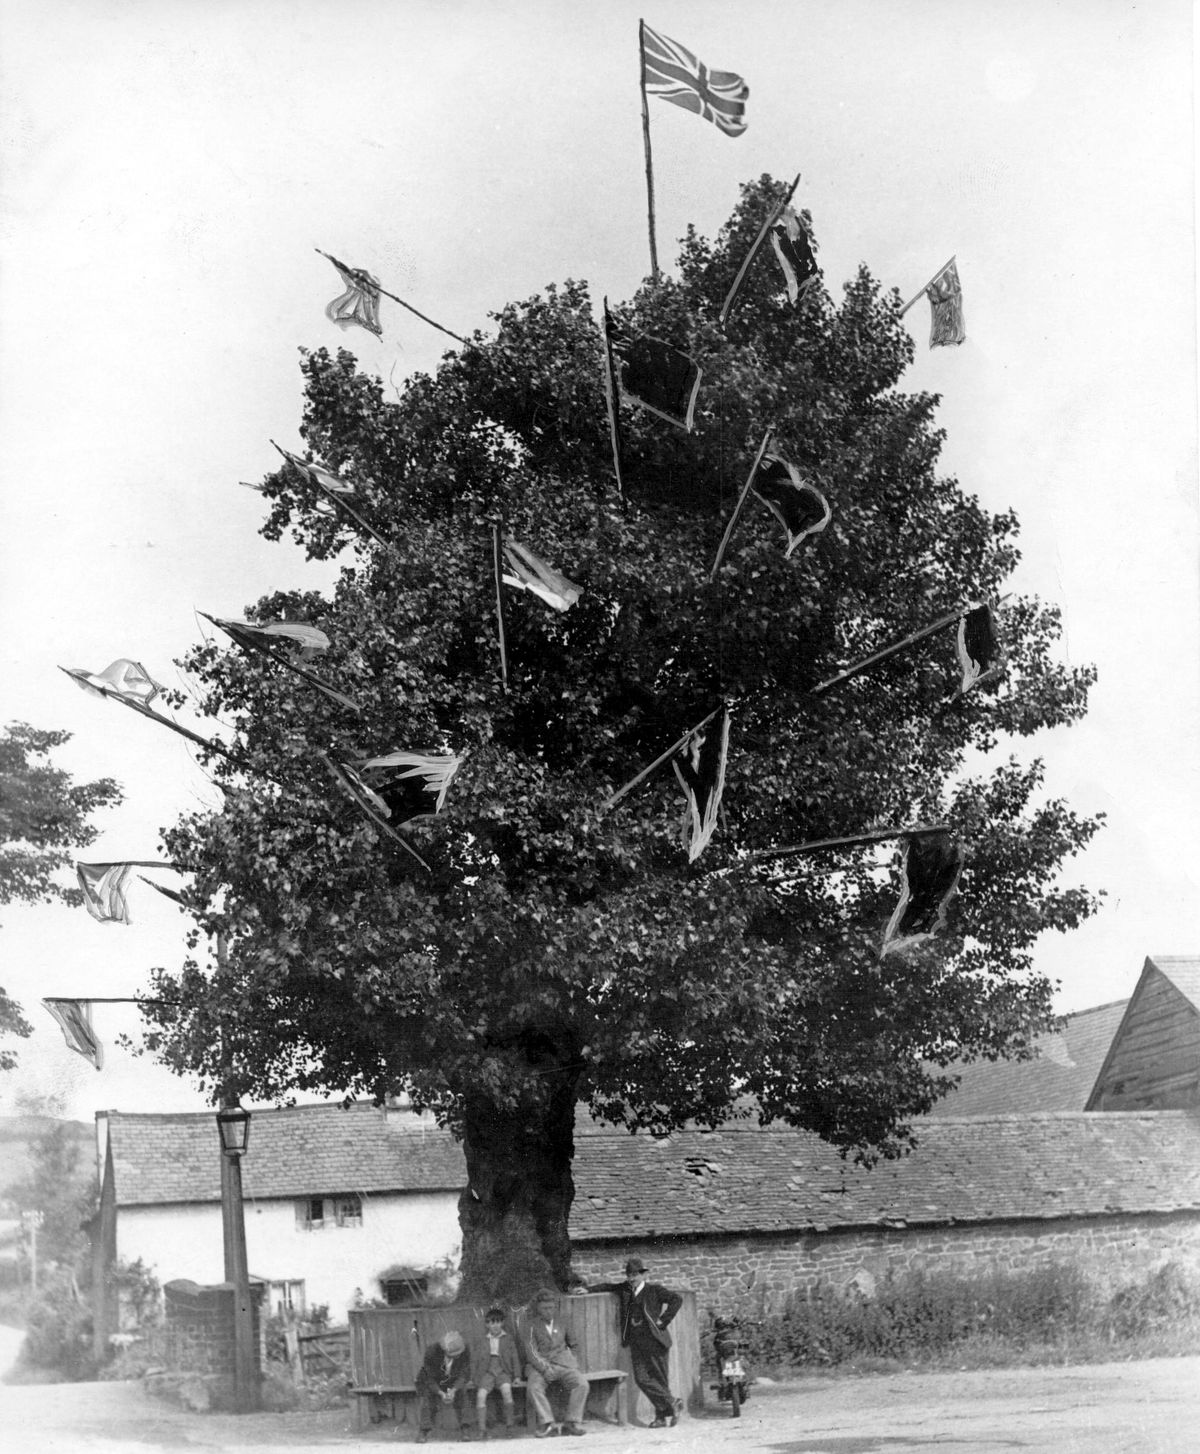 The original tree in May 1937.